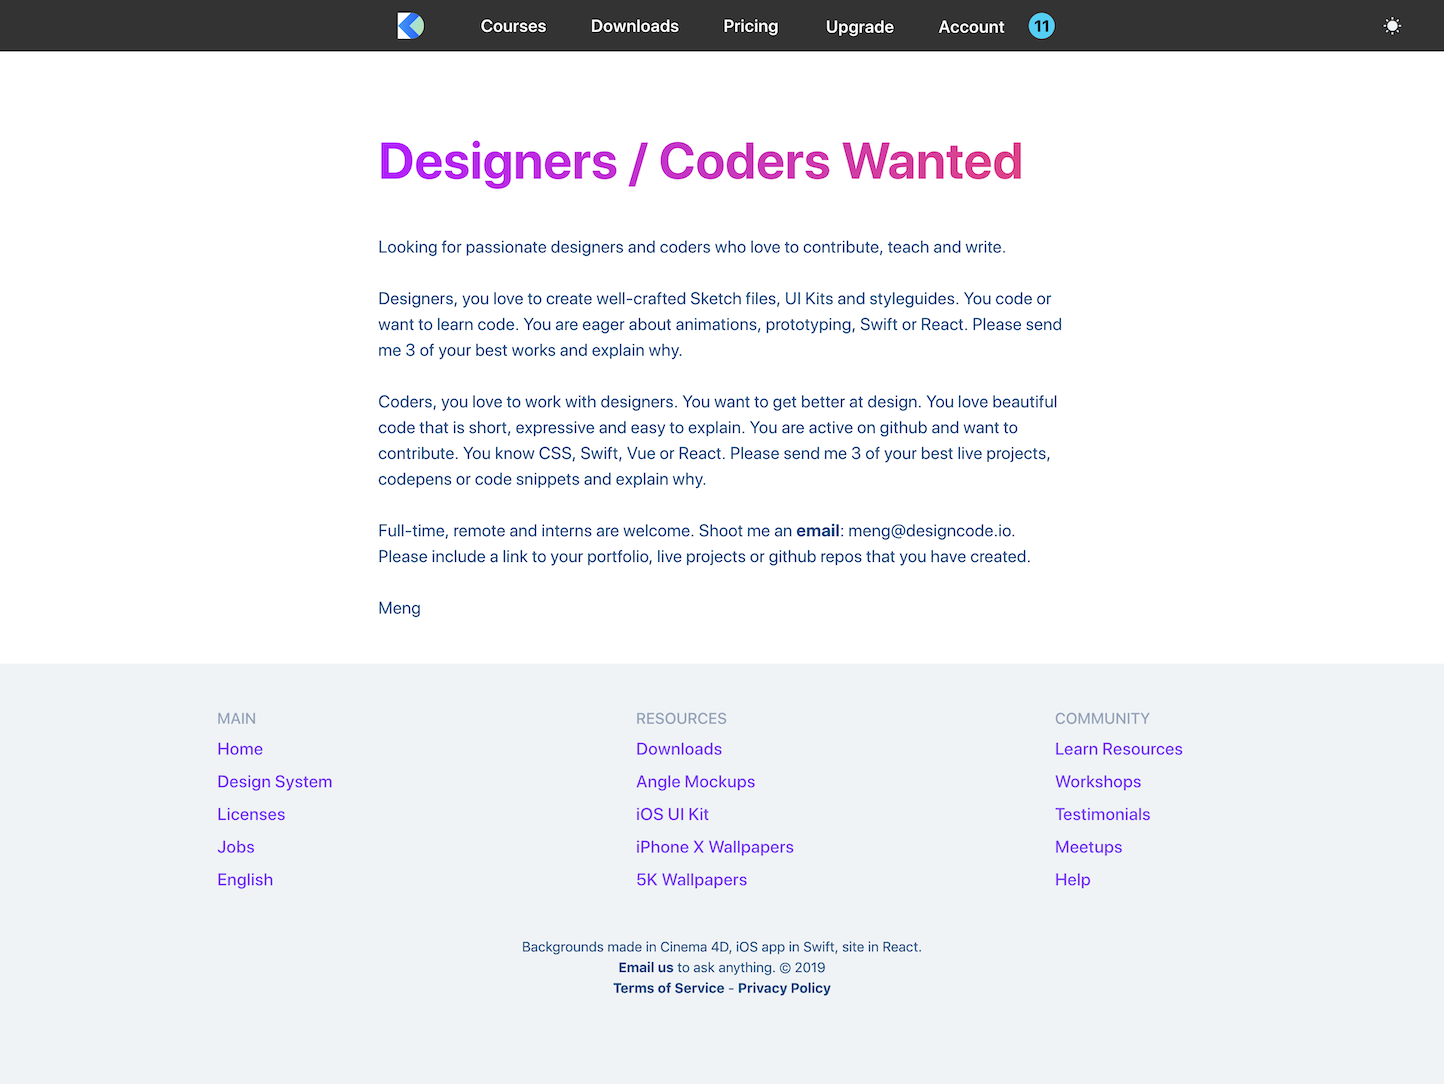 Screenshot of the Jobs page from the Design+Code website.